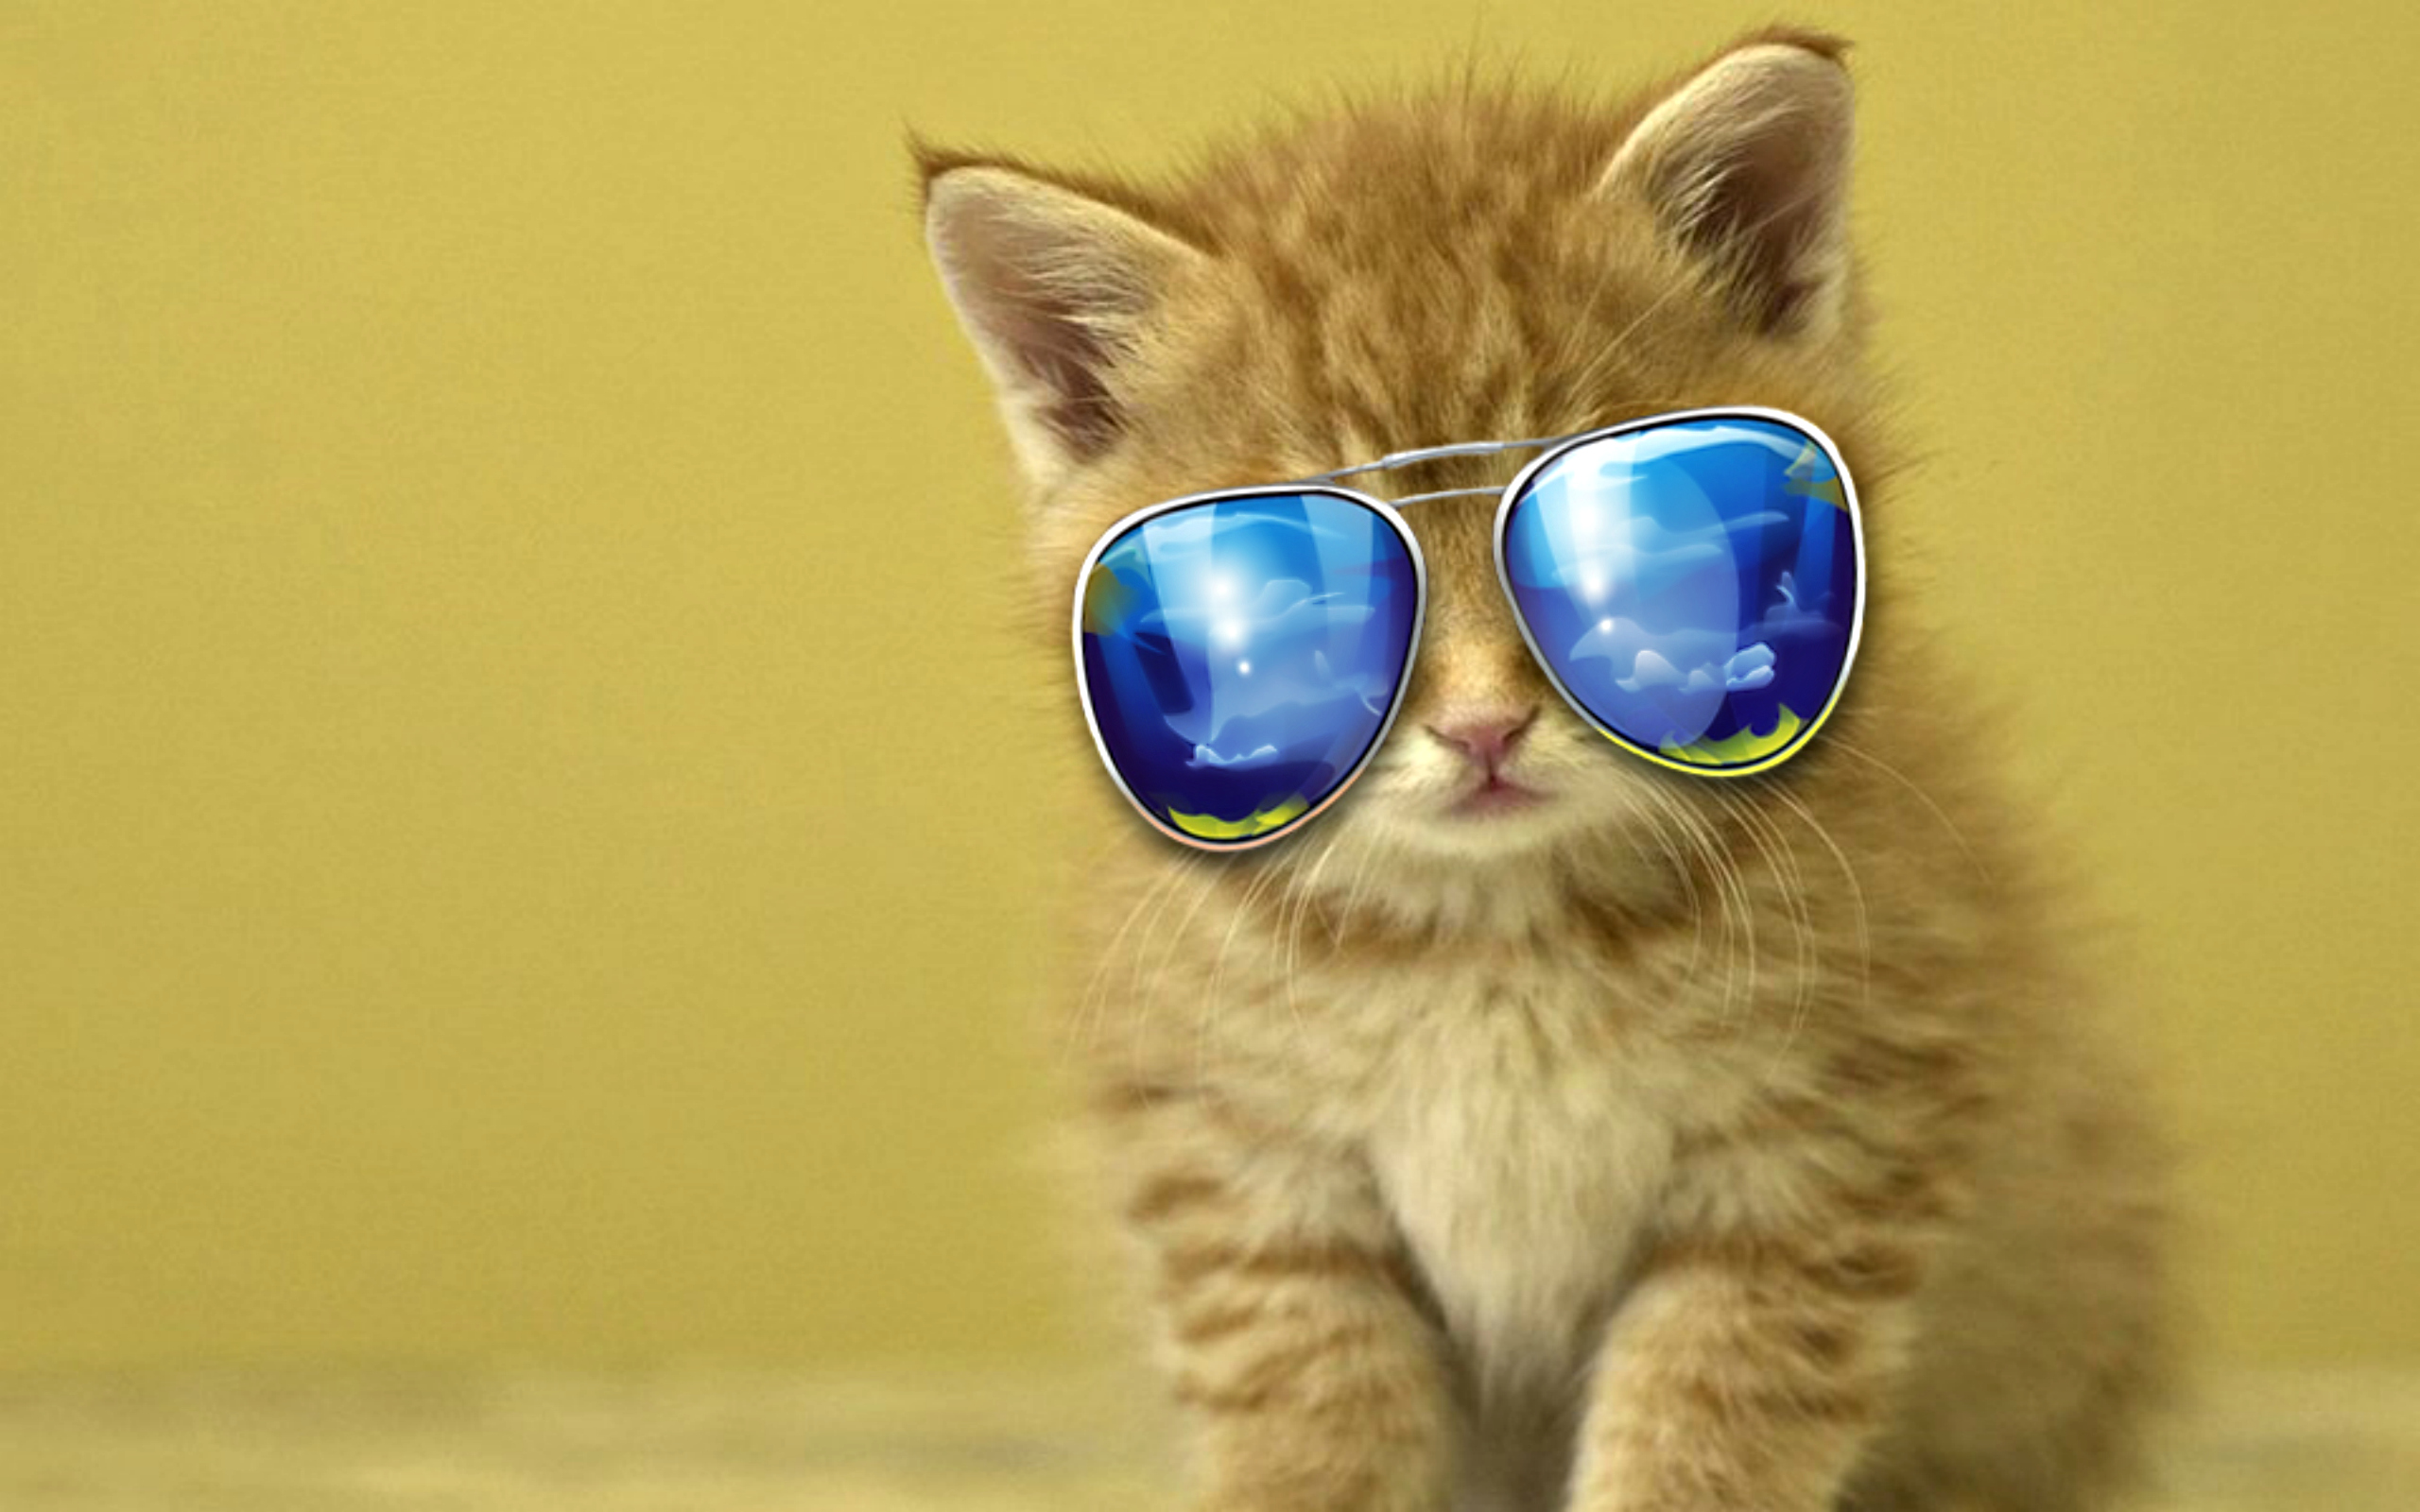 Cool Pictures of a Kitten in Sunglasses 1585 Kb